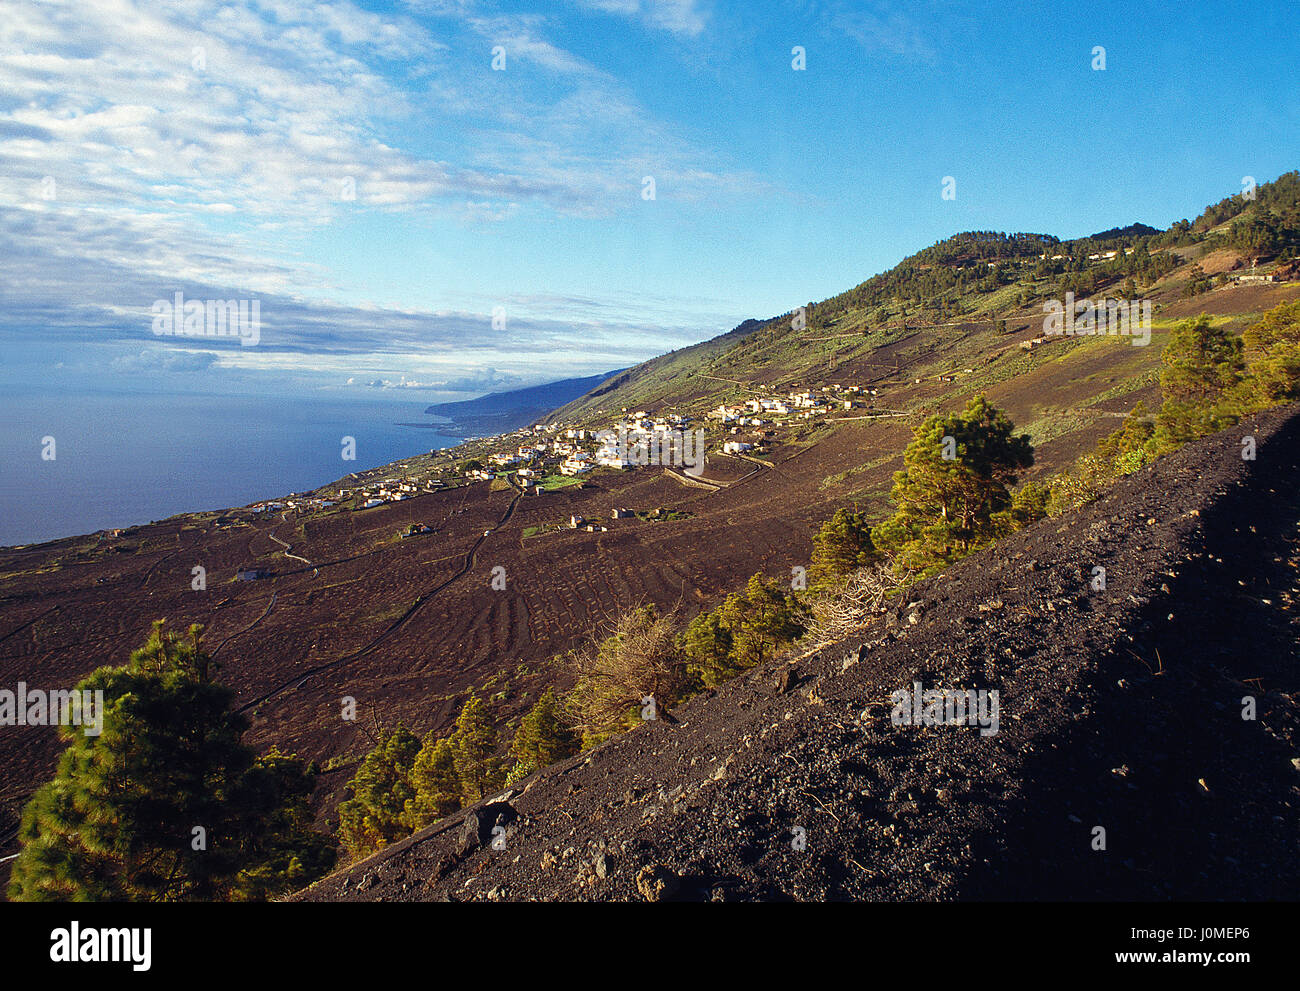 Overview from Las Indias viewpoint. La Palma island, Canary Islands, Spain. Stock Photo